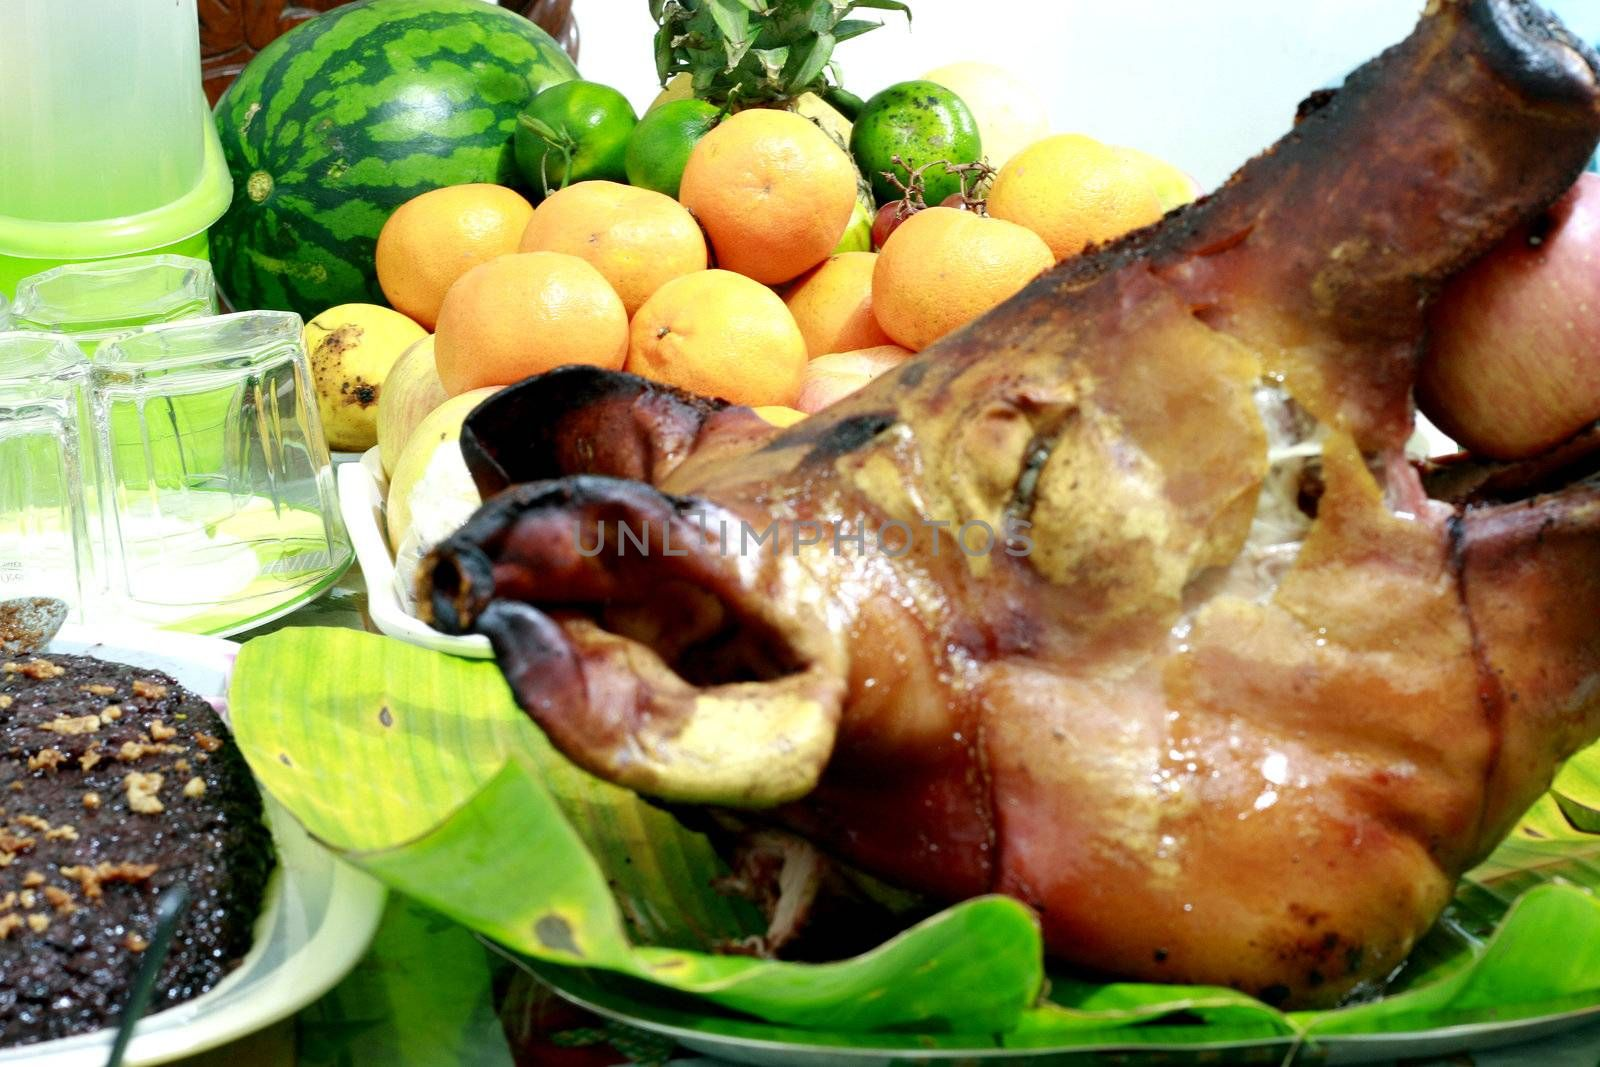 Lechon - a filipino delicacy during festivities and holiday seasons with fruits and rice cakes.